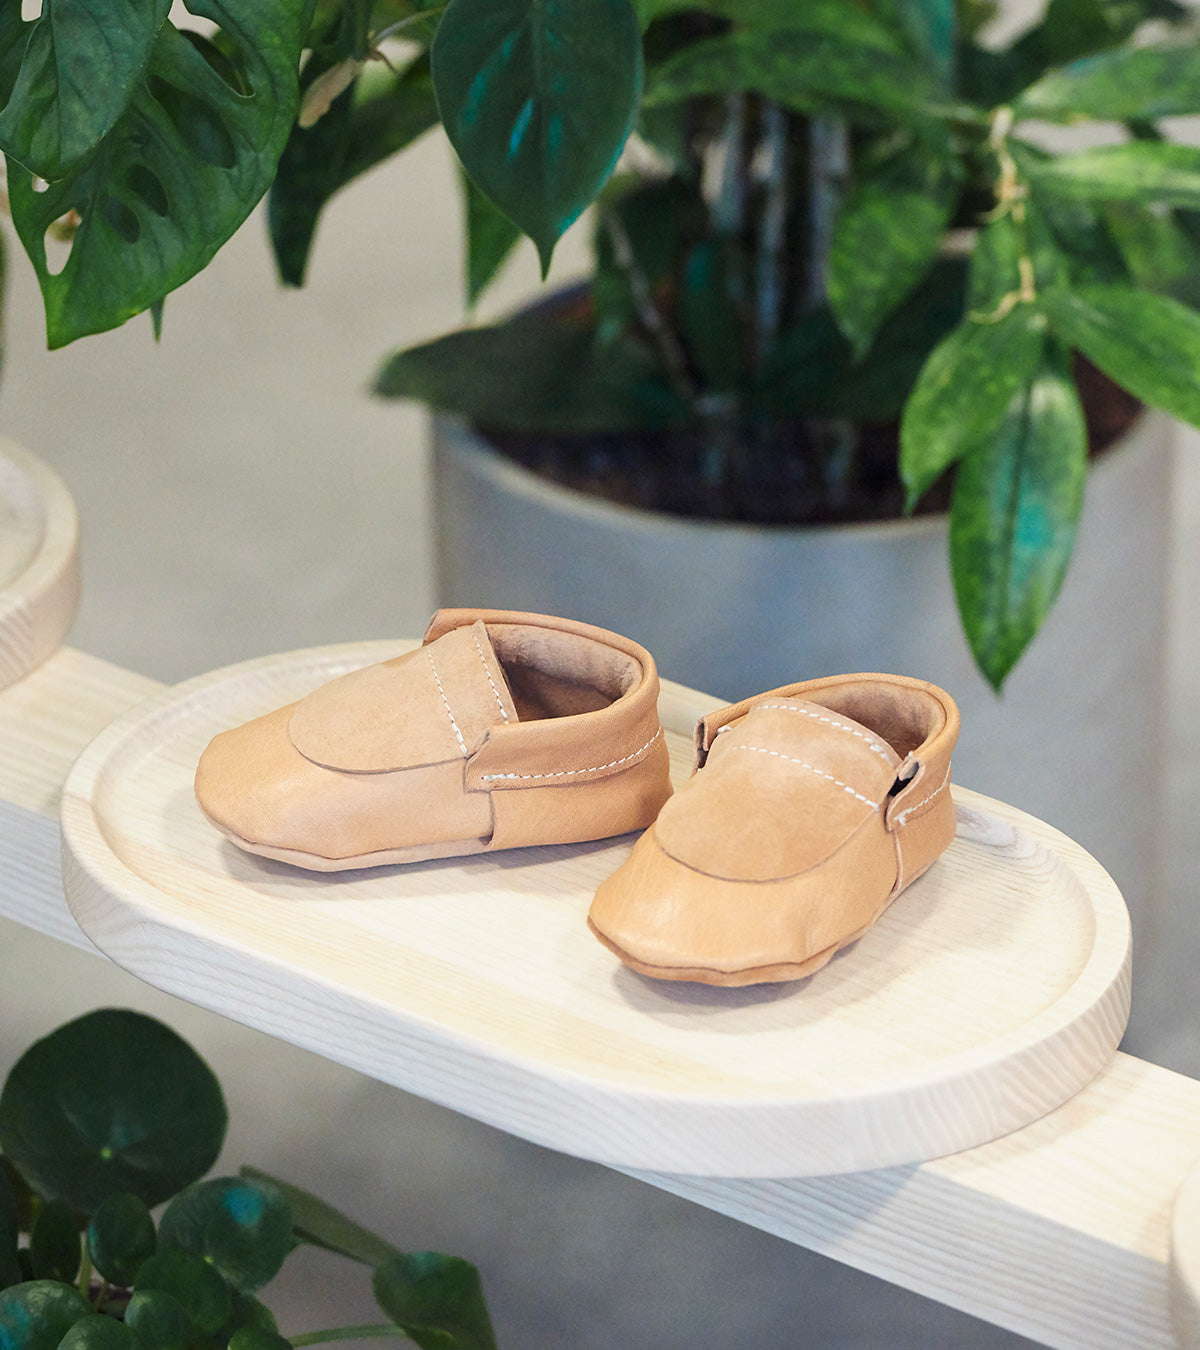 Halfmoon Moccs Nude, made in Switzerland